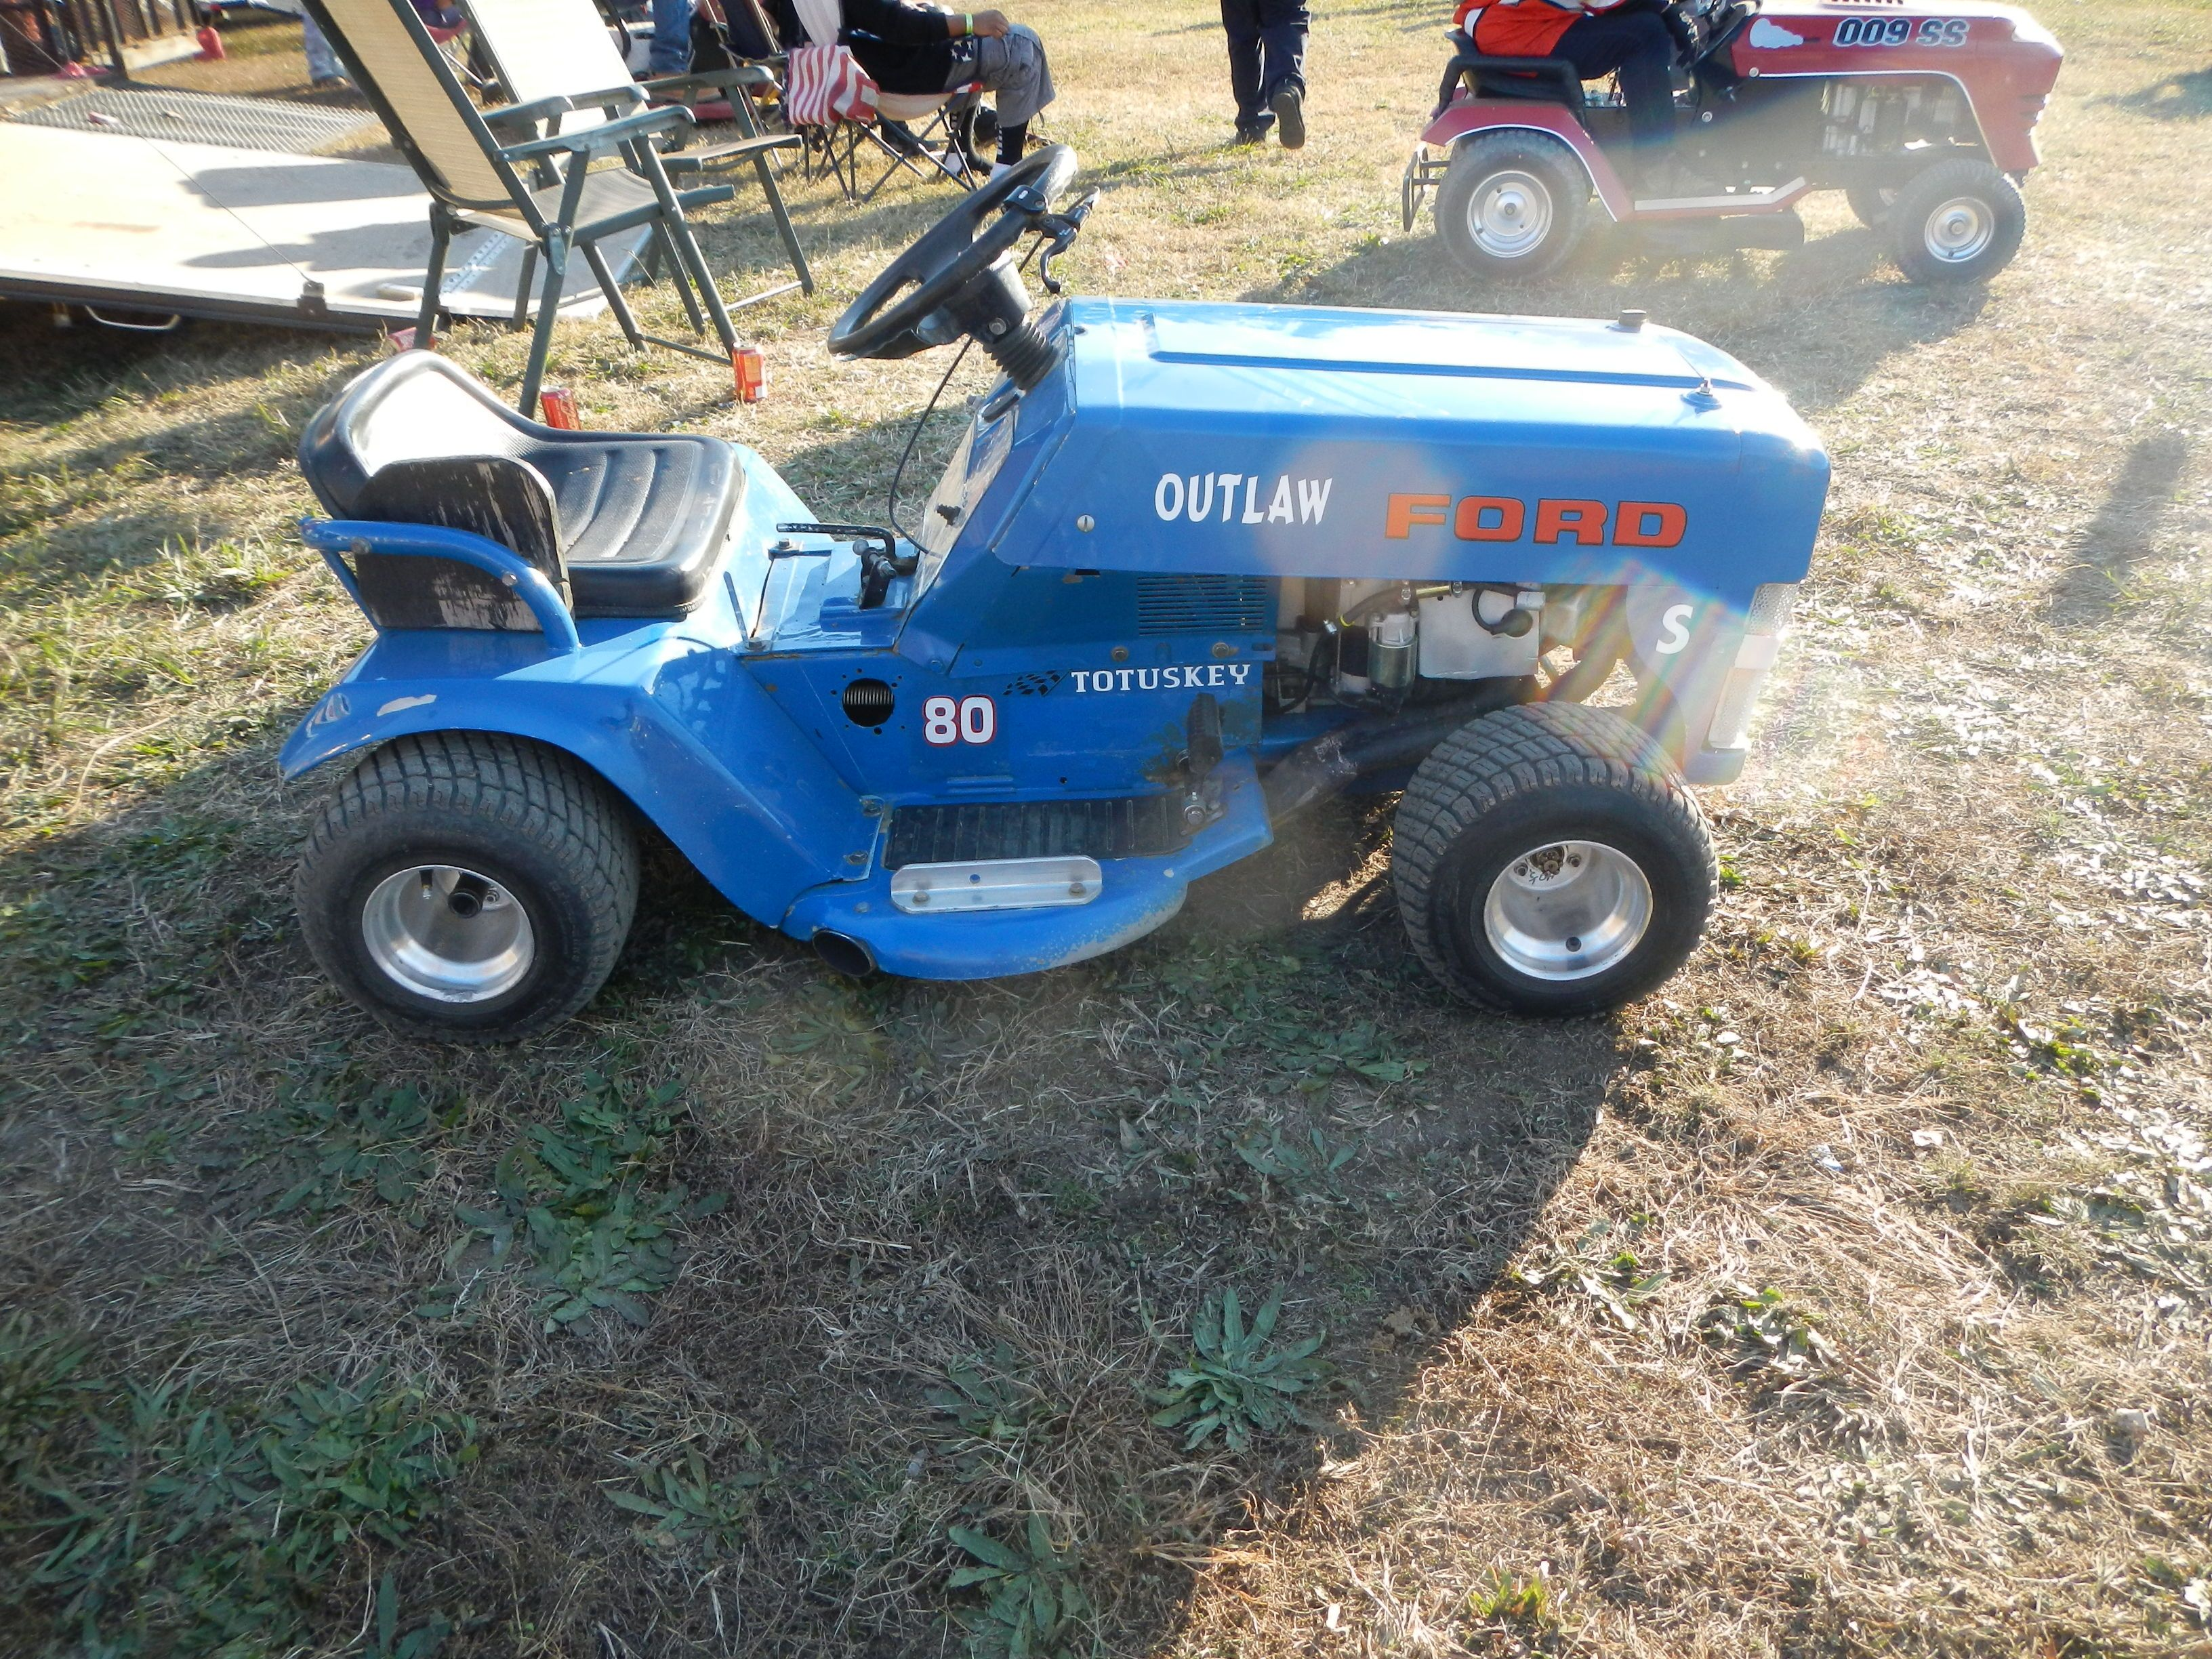 Suped Up Lawn Mower For Racing With The Virginia Lawn Mower Racing - Suped up